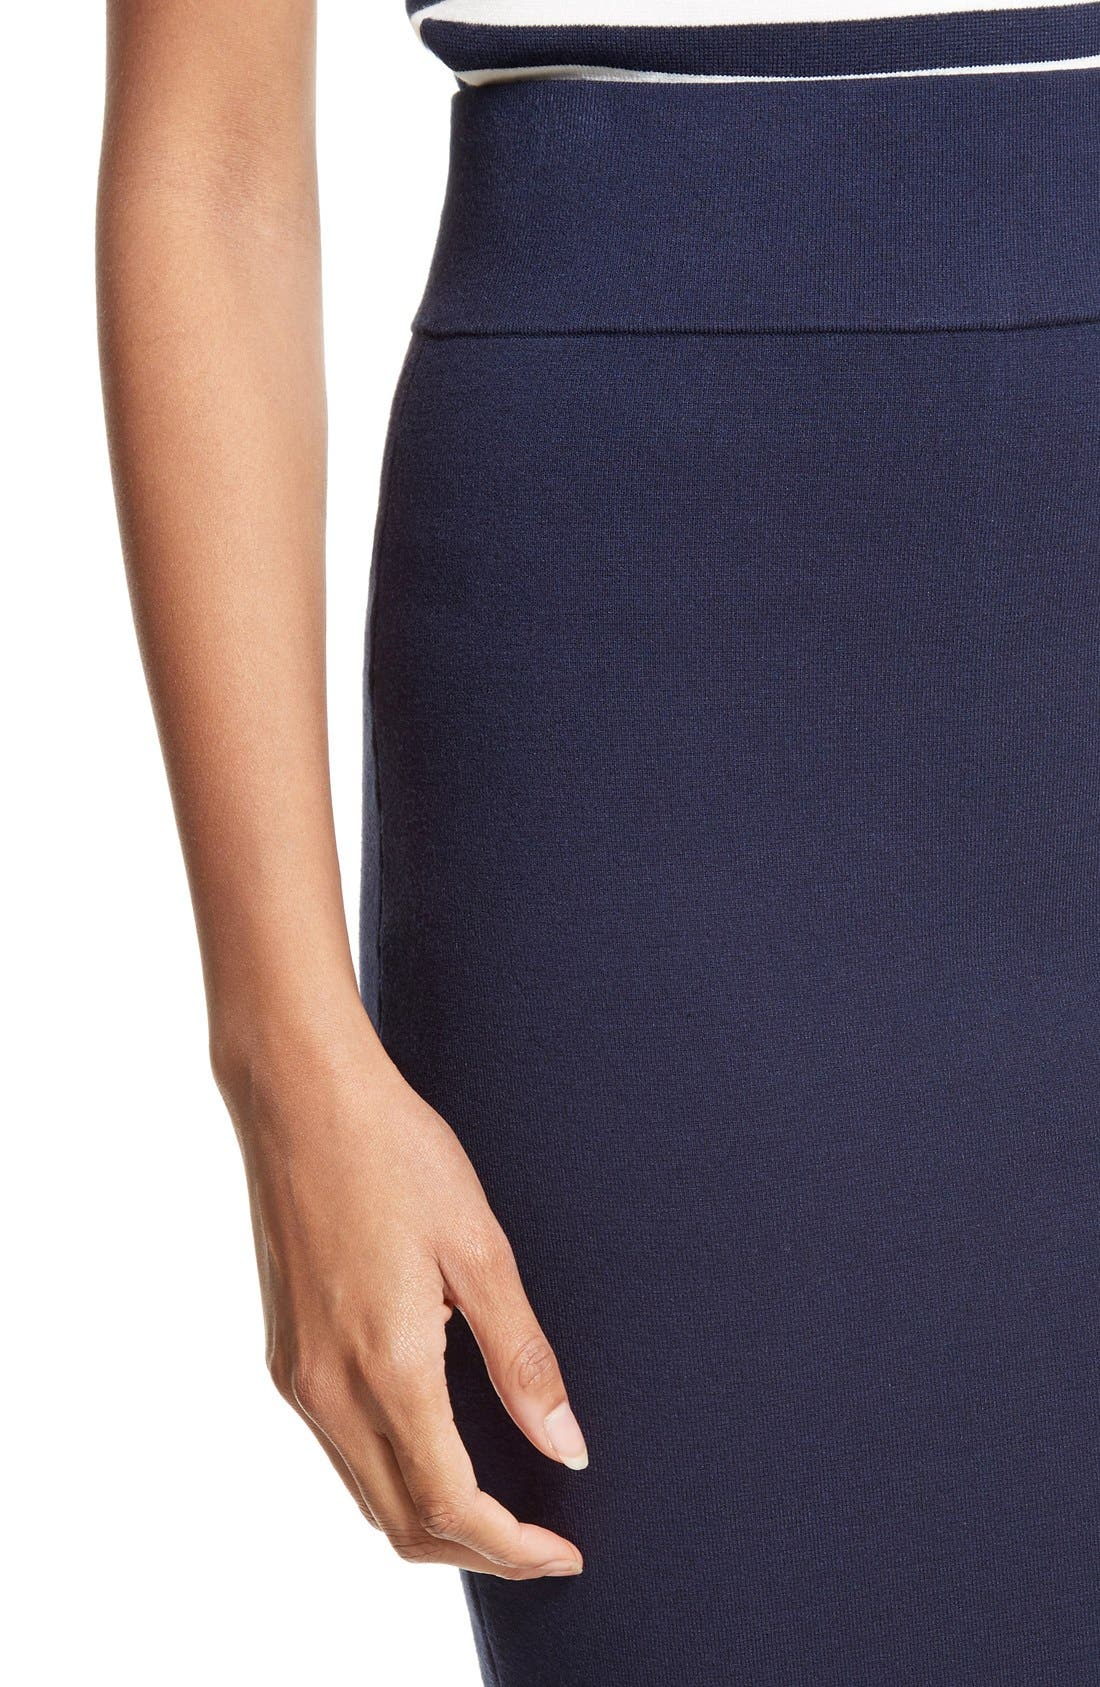 Stretch Knit Pencil Skirt,                             Alternate thumbnail 8, color,                             410